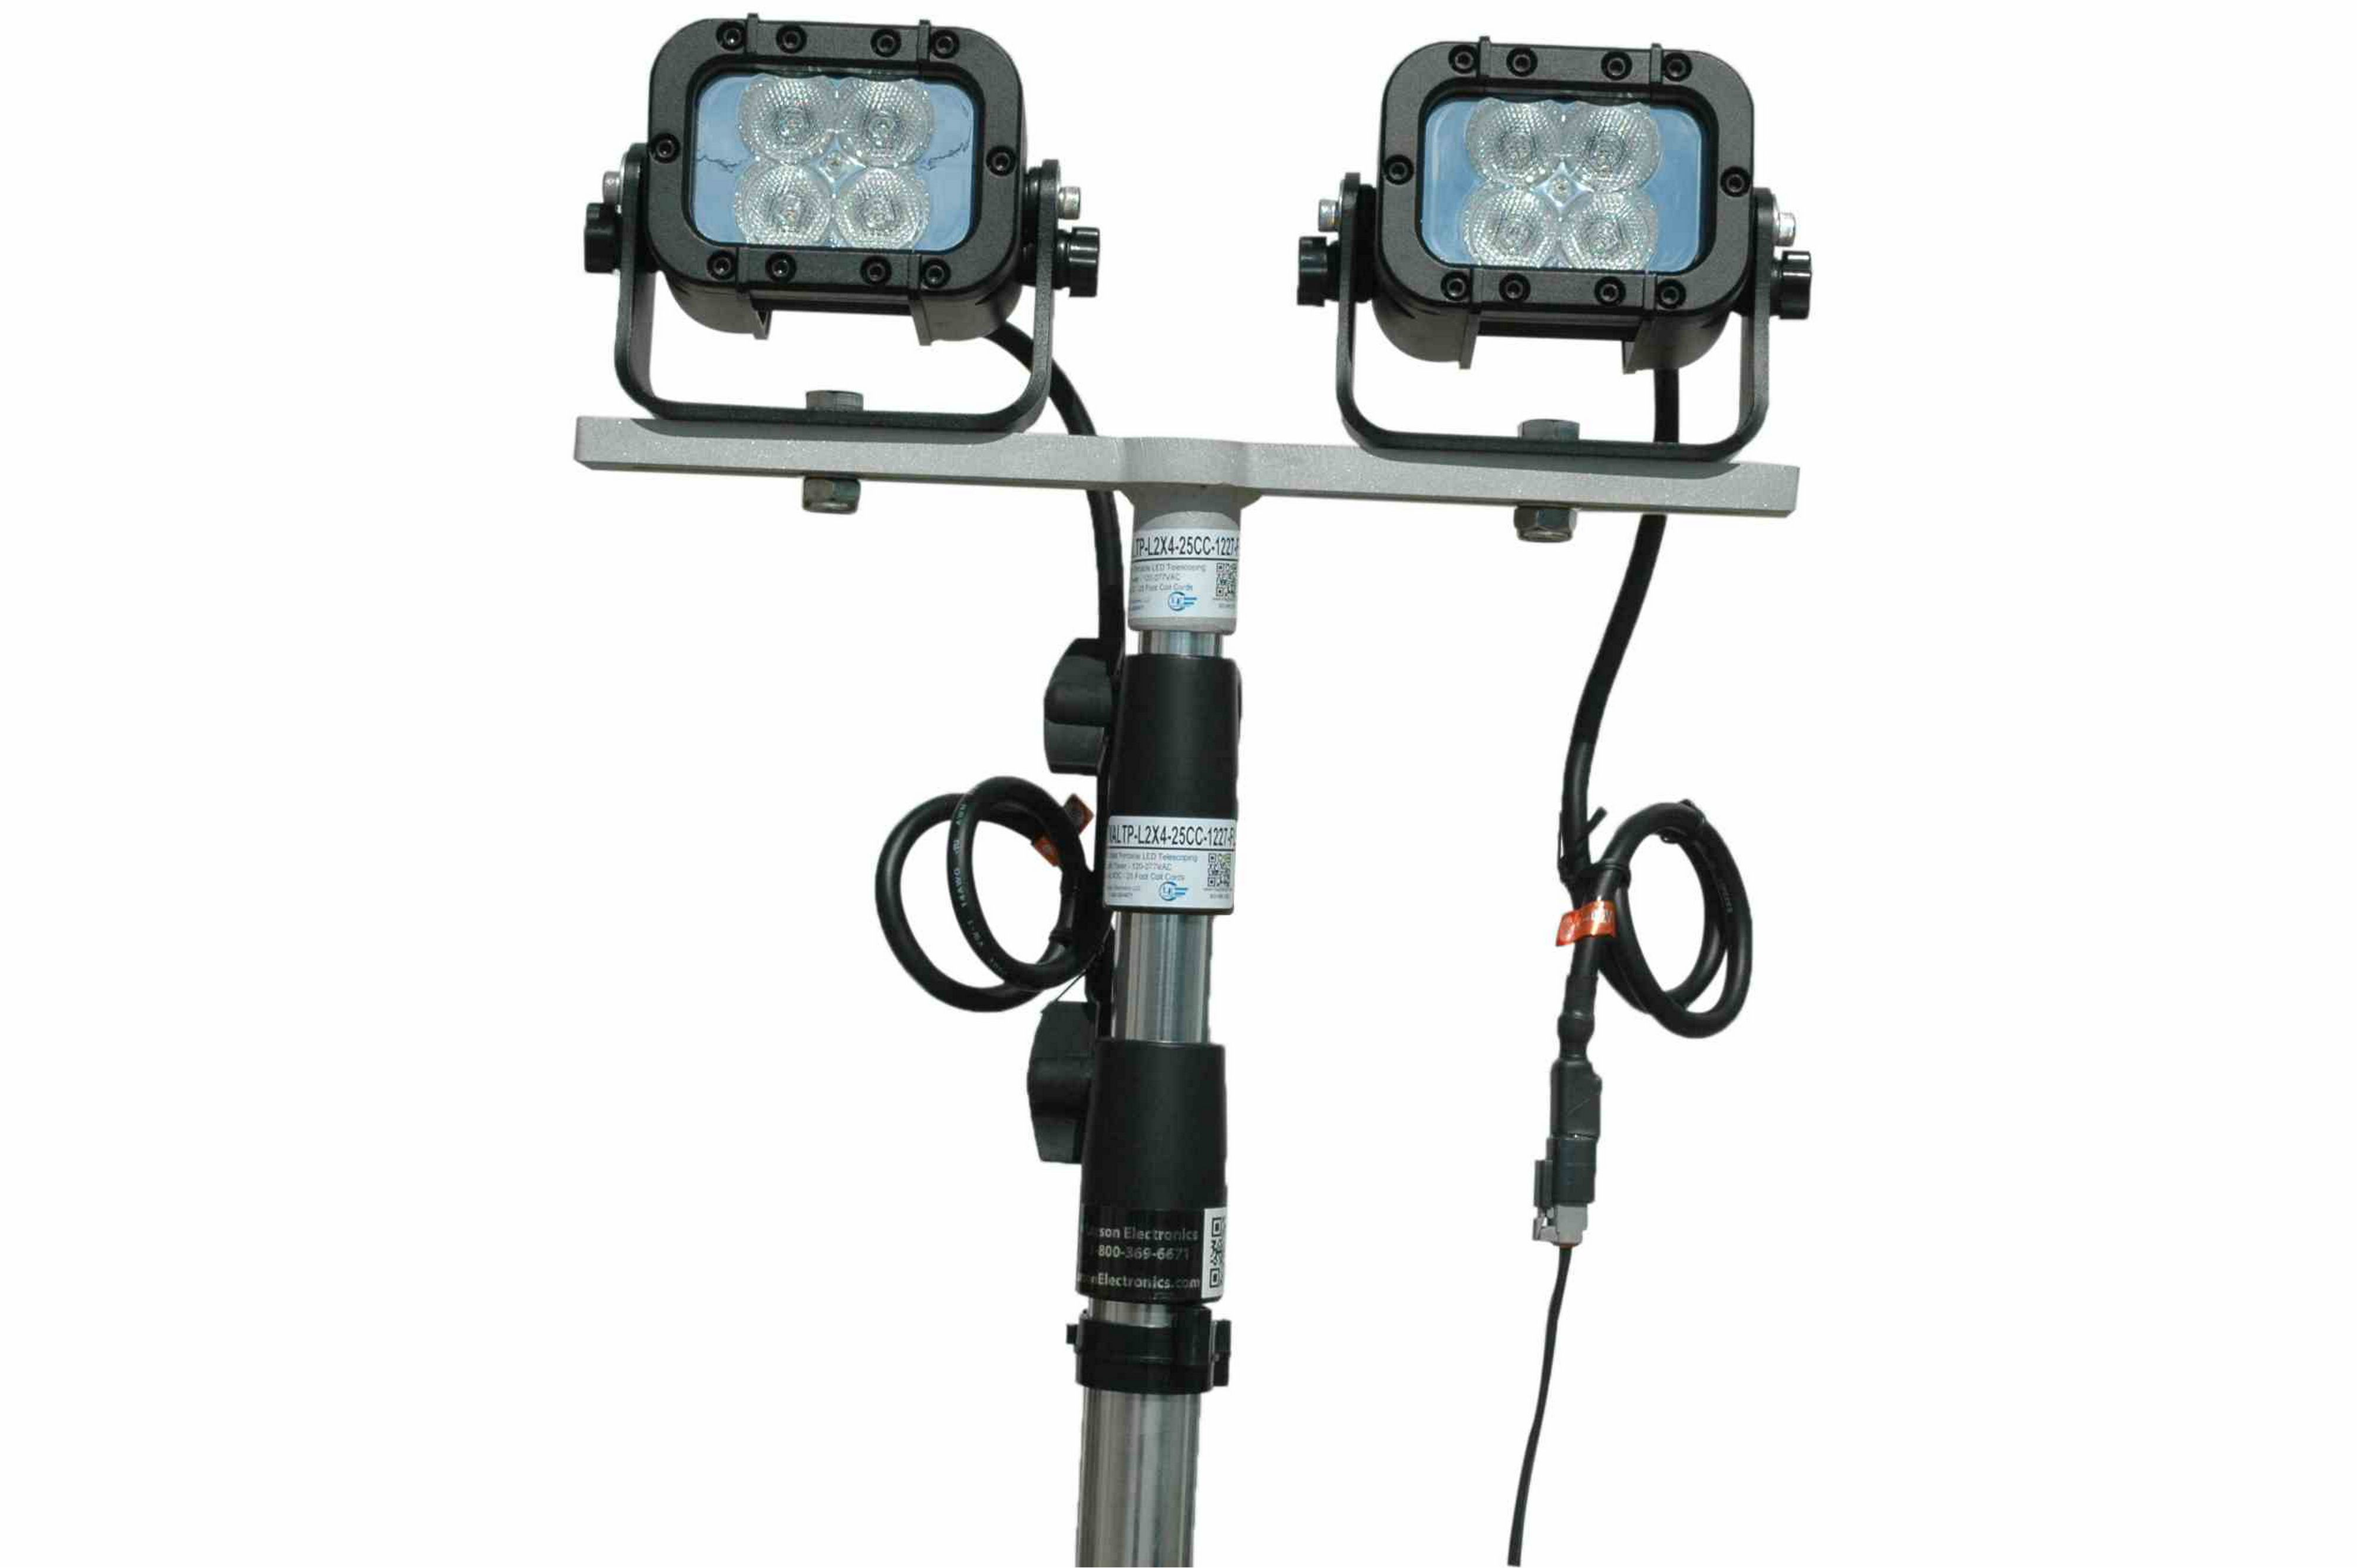 24 Watt Portable Led Telescoping Light Tower